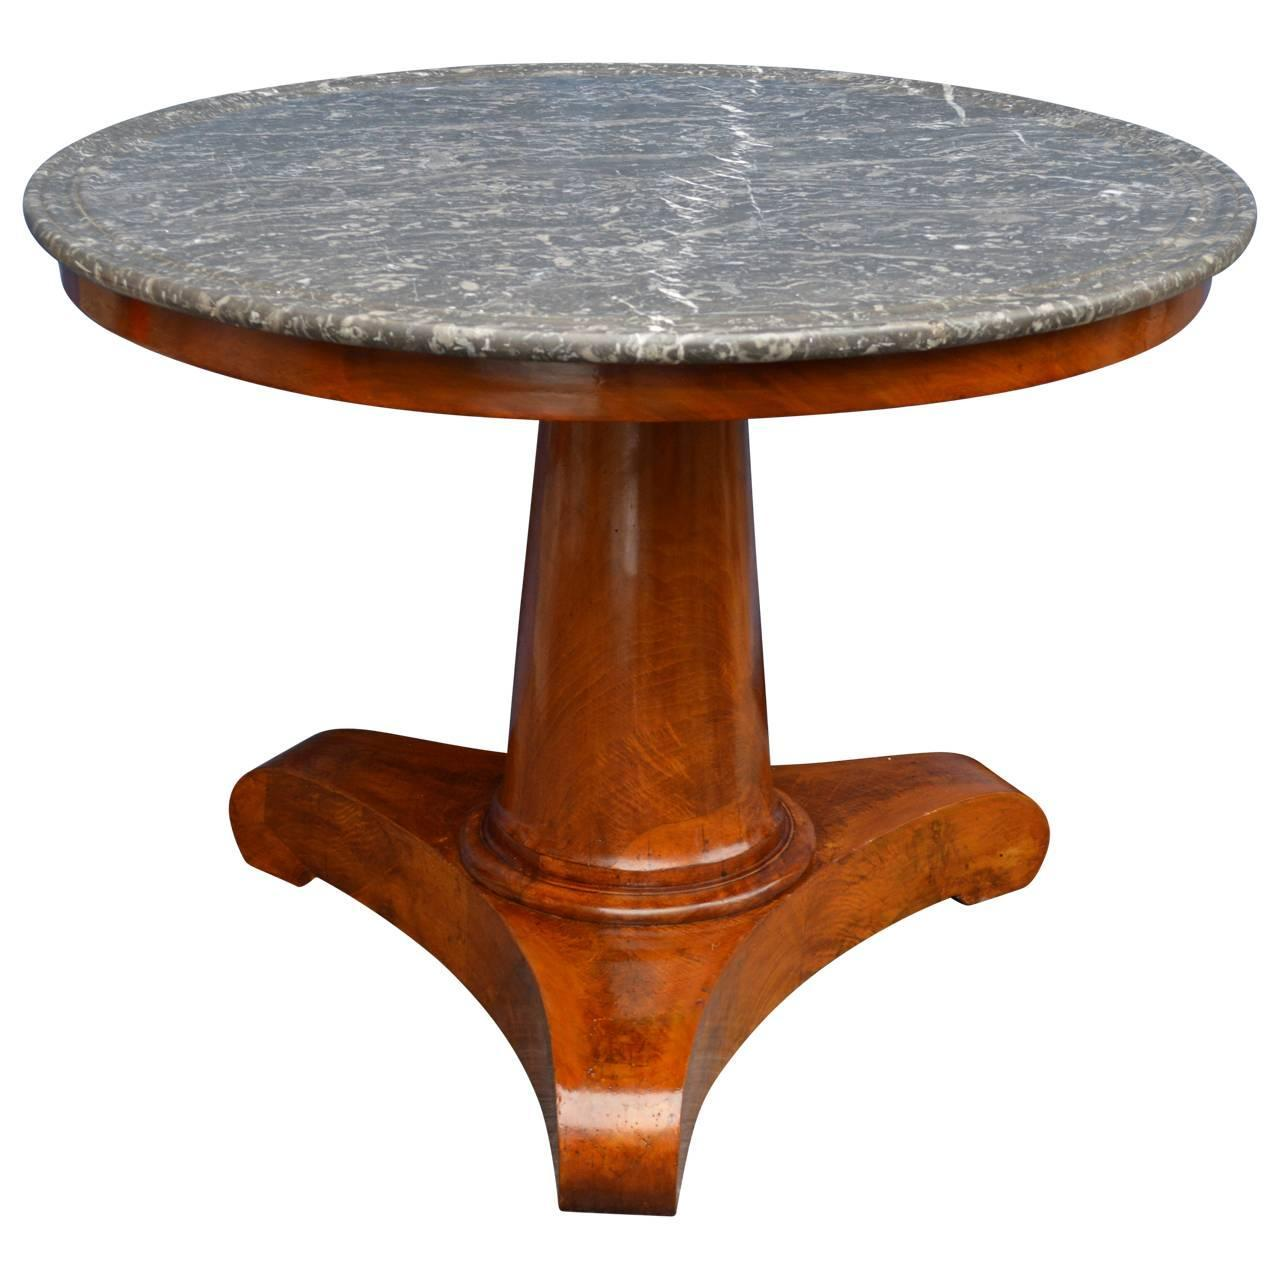 french art deco period carved mahogany swan leg table circa 1930s for sale at 1stdibs